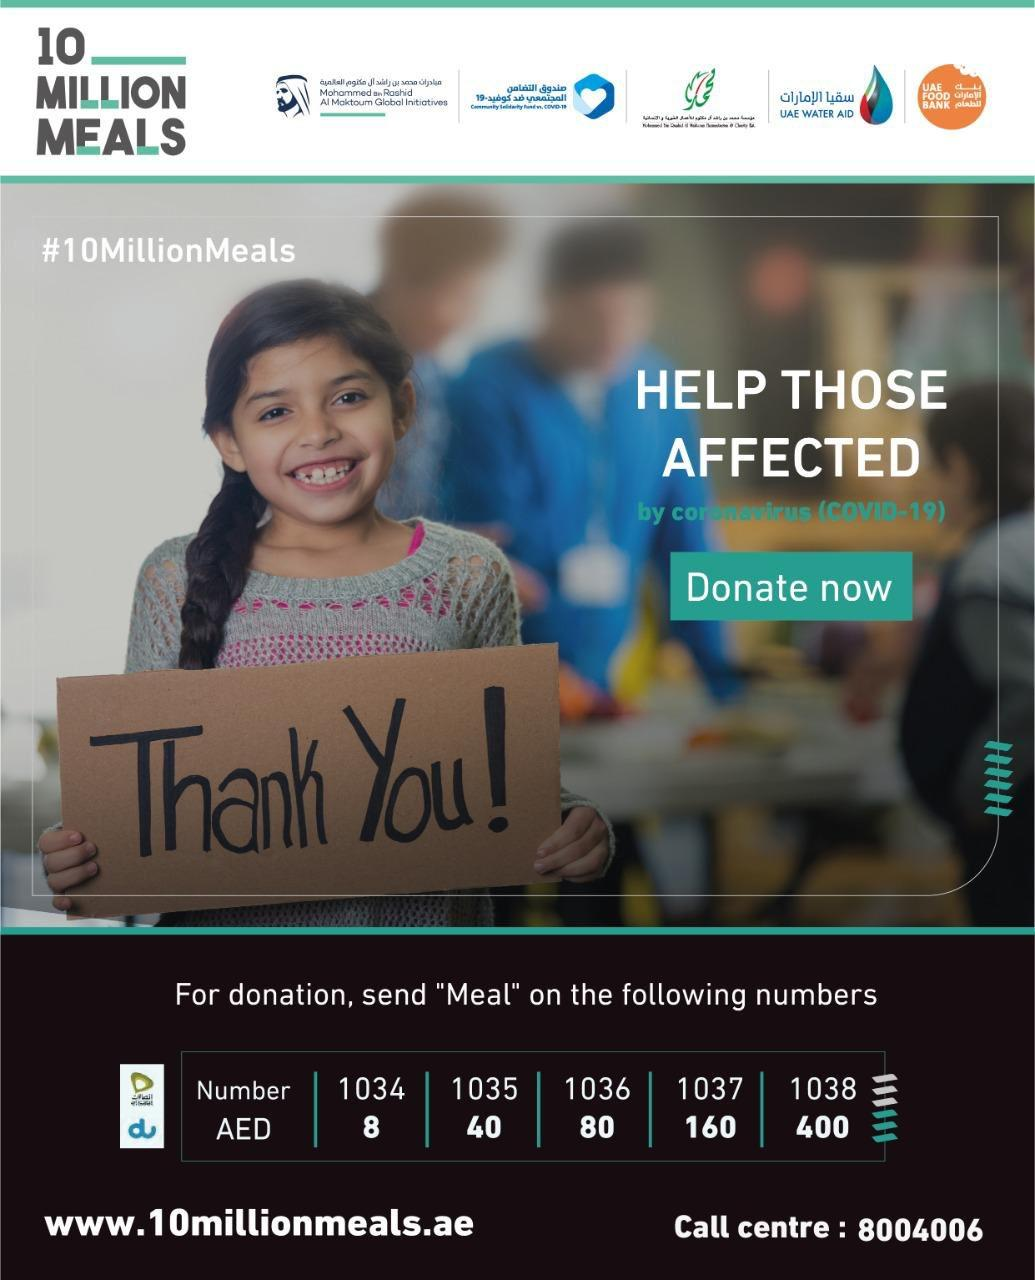 CCS Gulf Cares – Iftar meal donation 2020